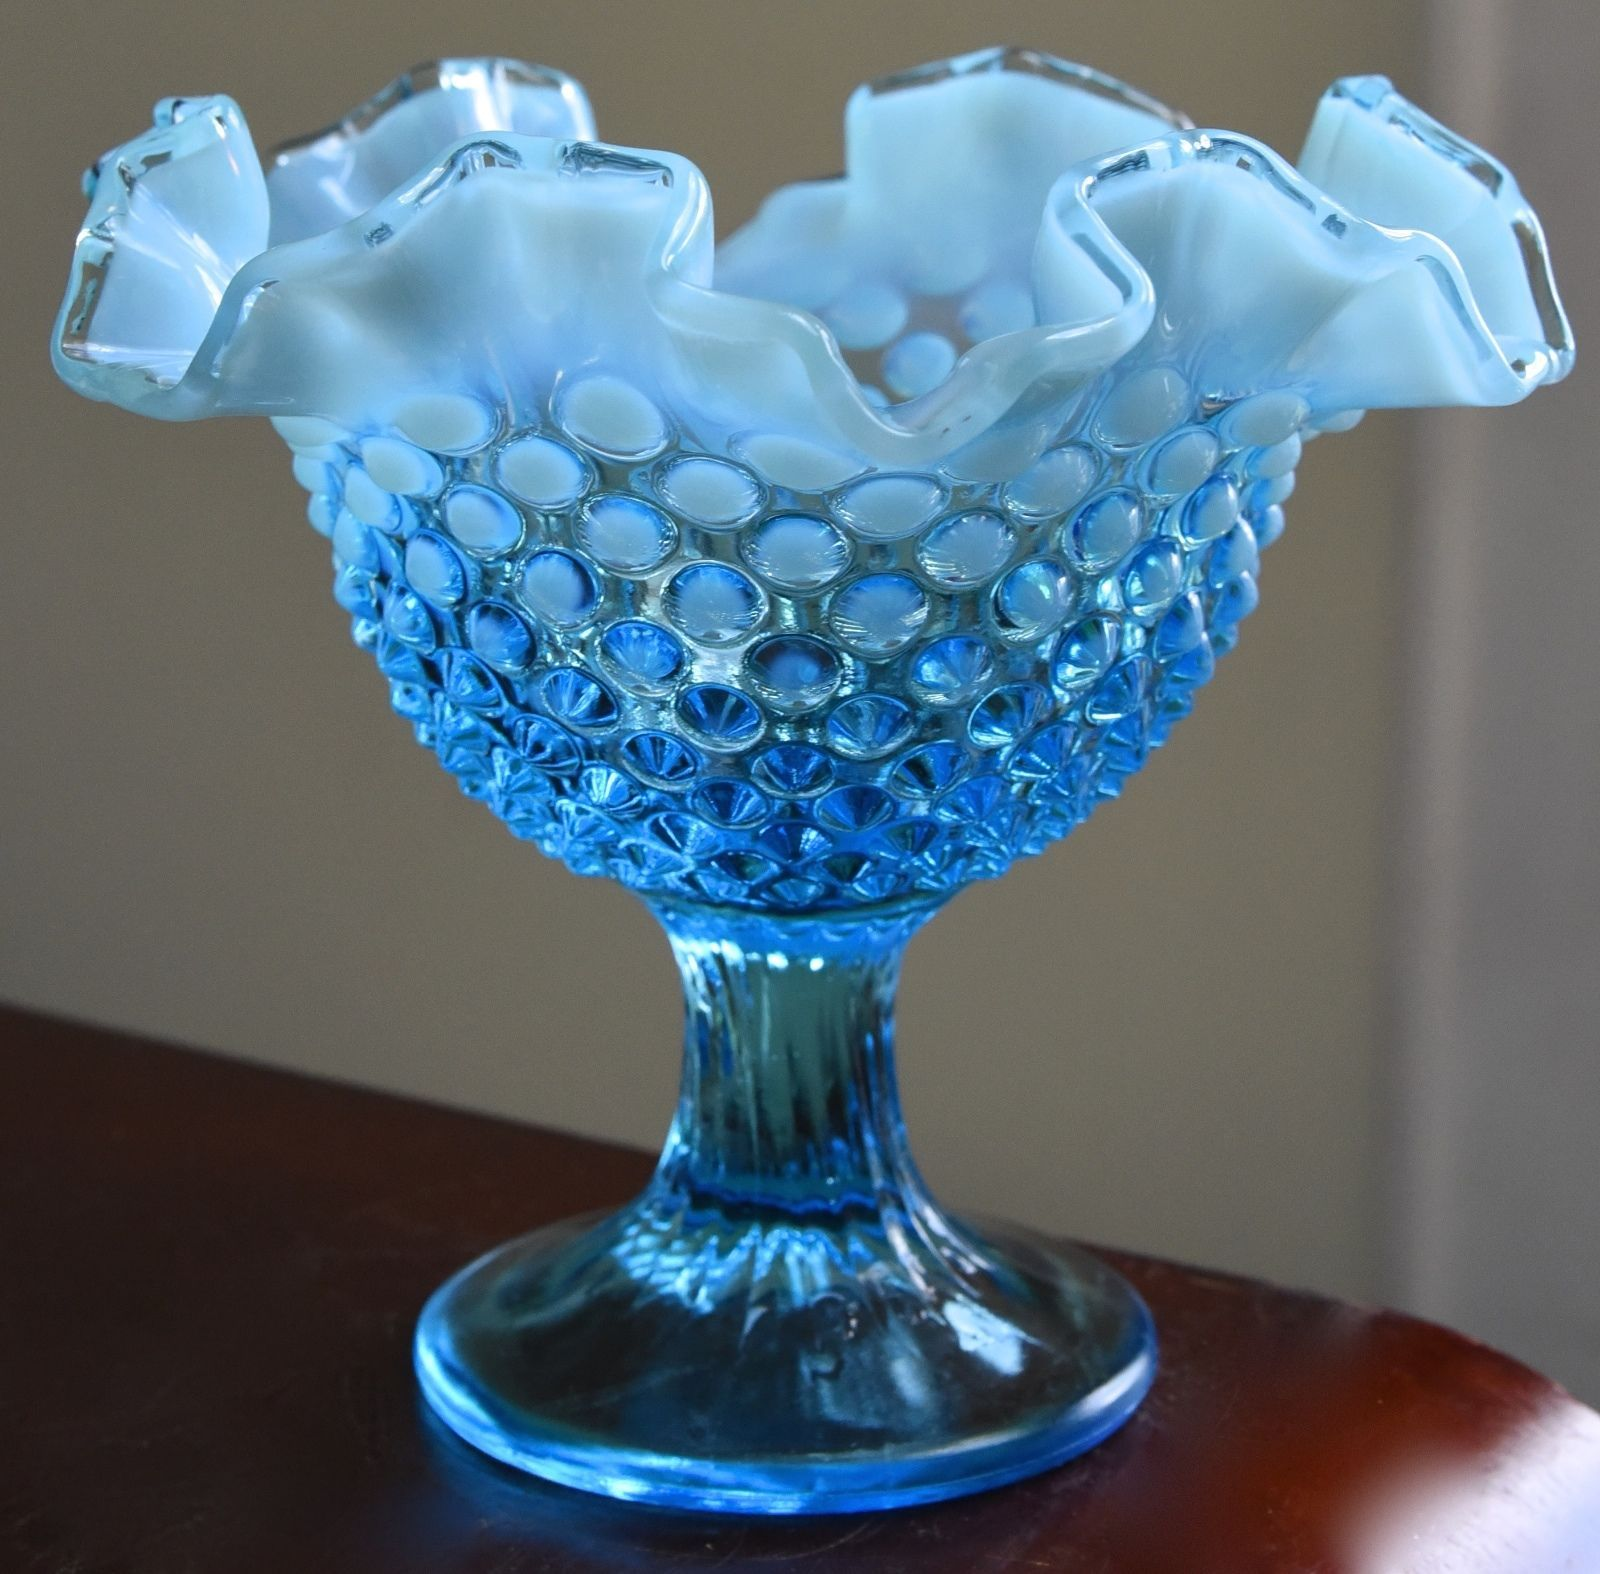 Primary image for PALE BLUE GLASS MILK GLASS CASED HOBNAIL RIPPLE CRIMPED RIM COMPOTE BOWL DESSERT